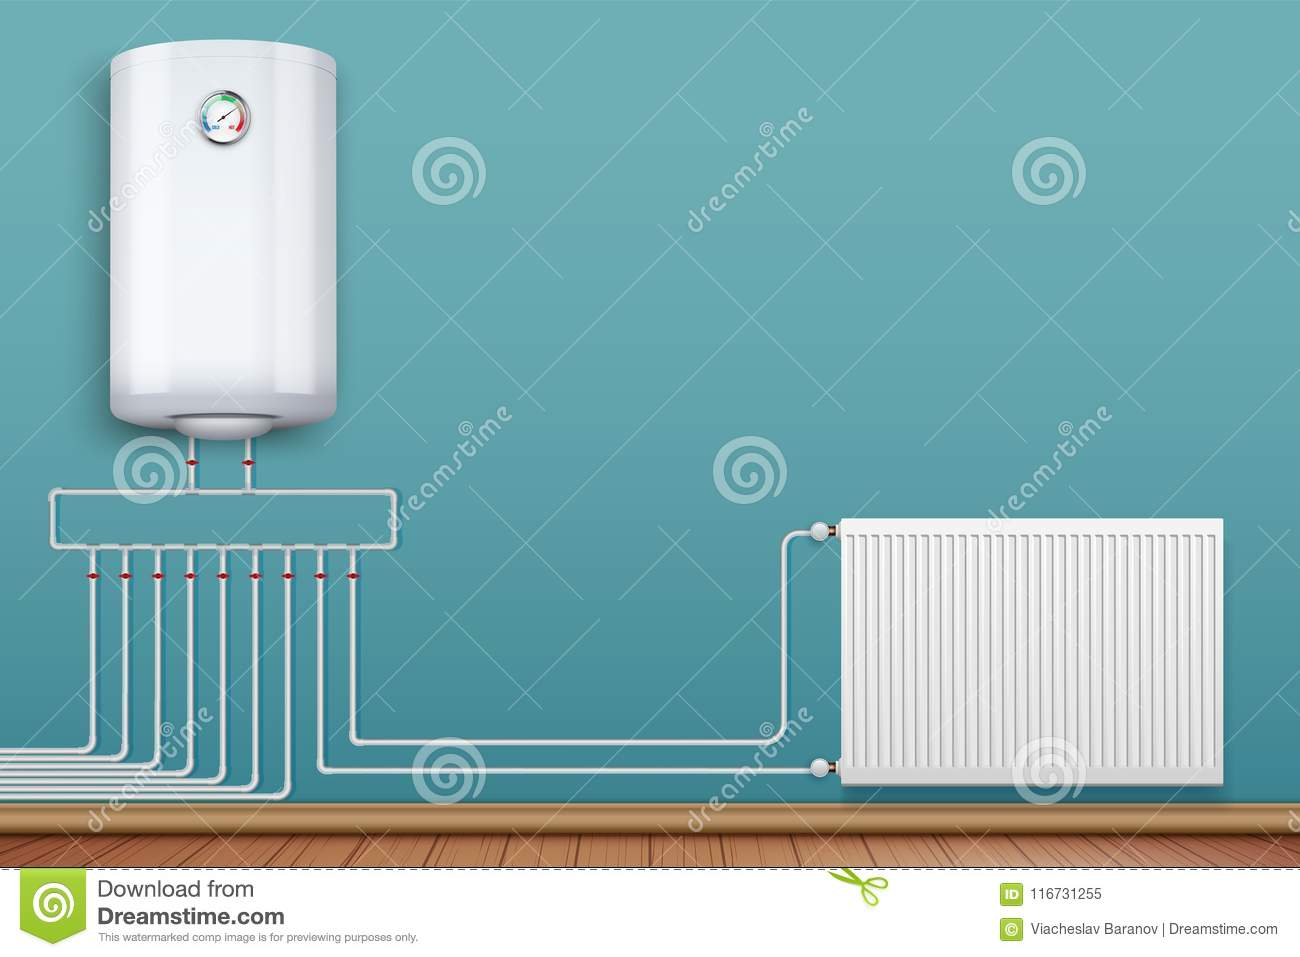 Heating Radiator And Boiler In Room Stock Vector - Illustration of ...